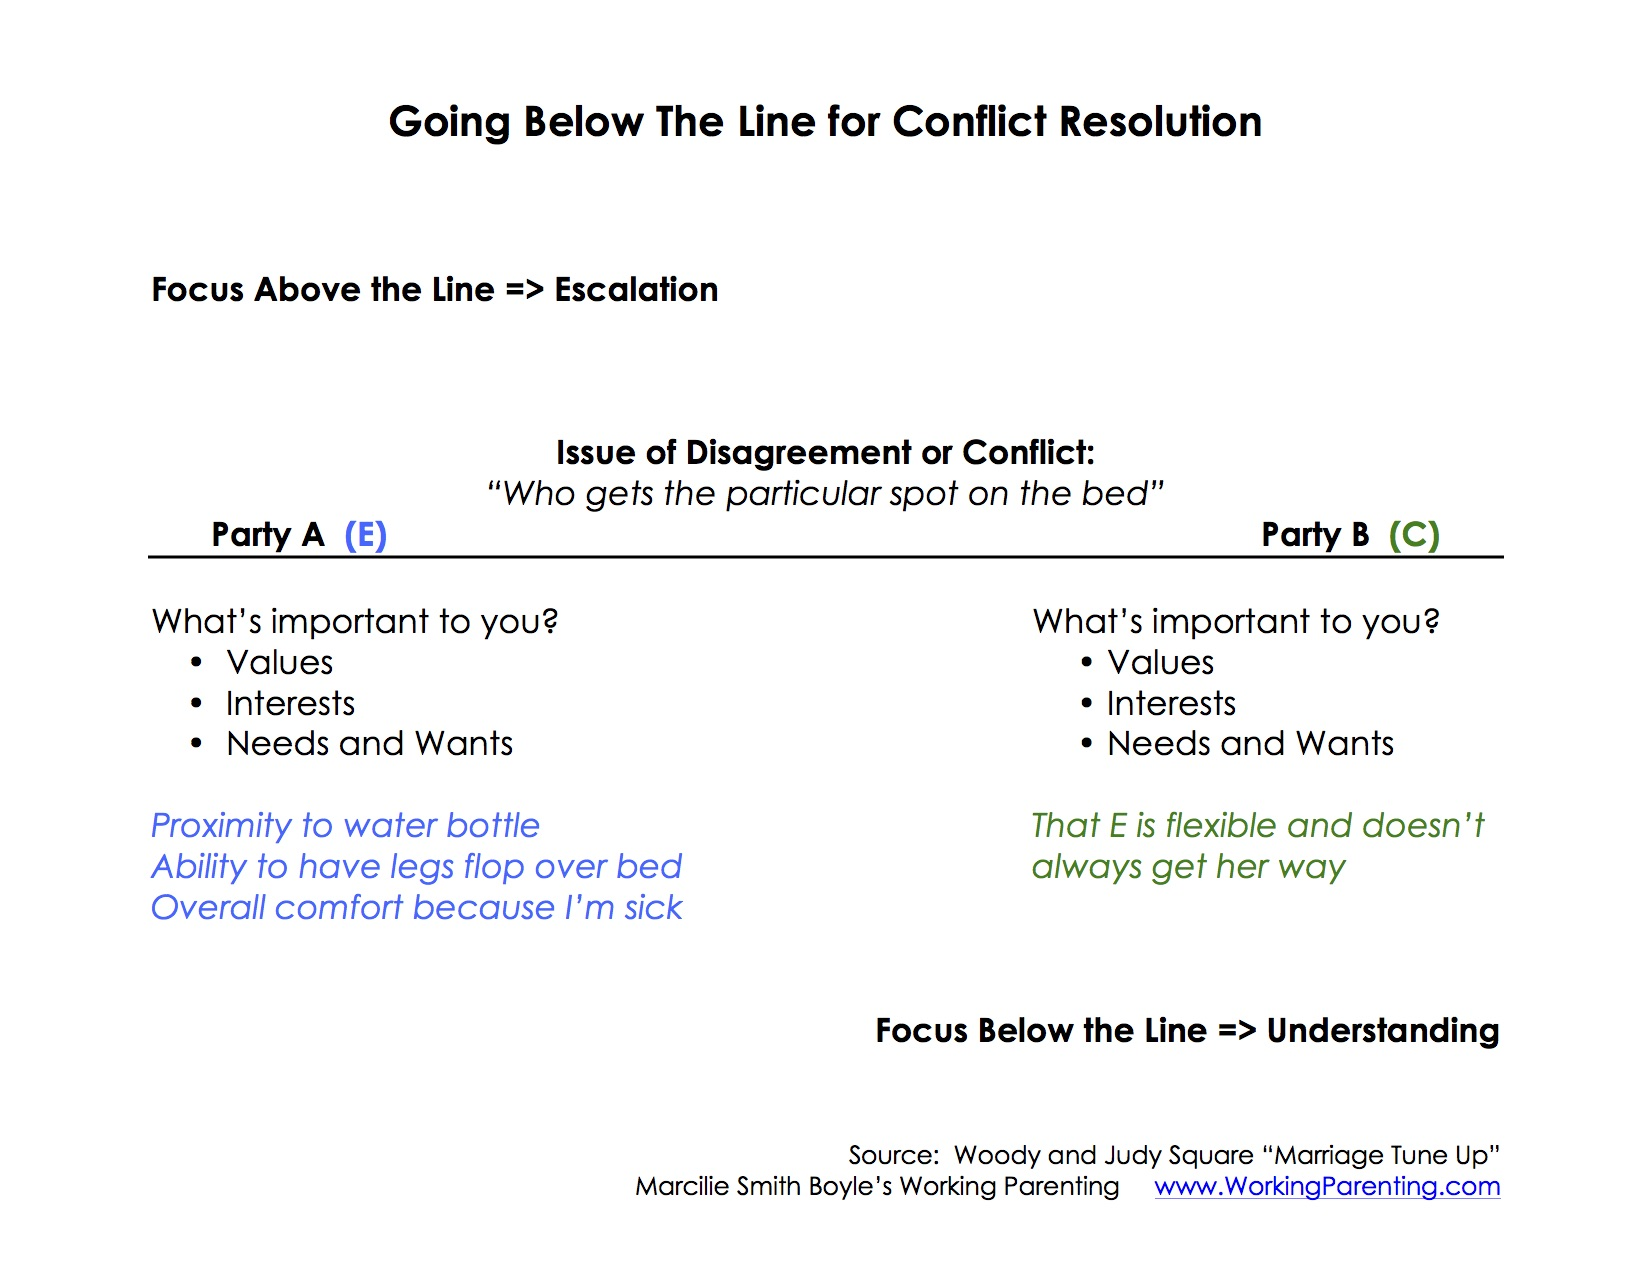 Going Below The Line for Conflict Resolution Example